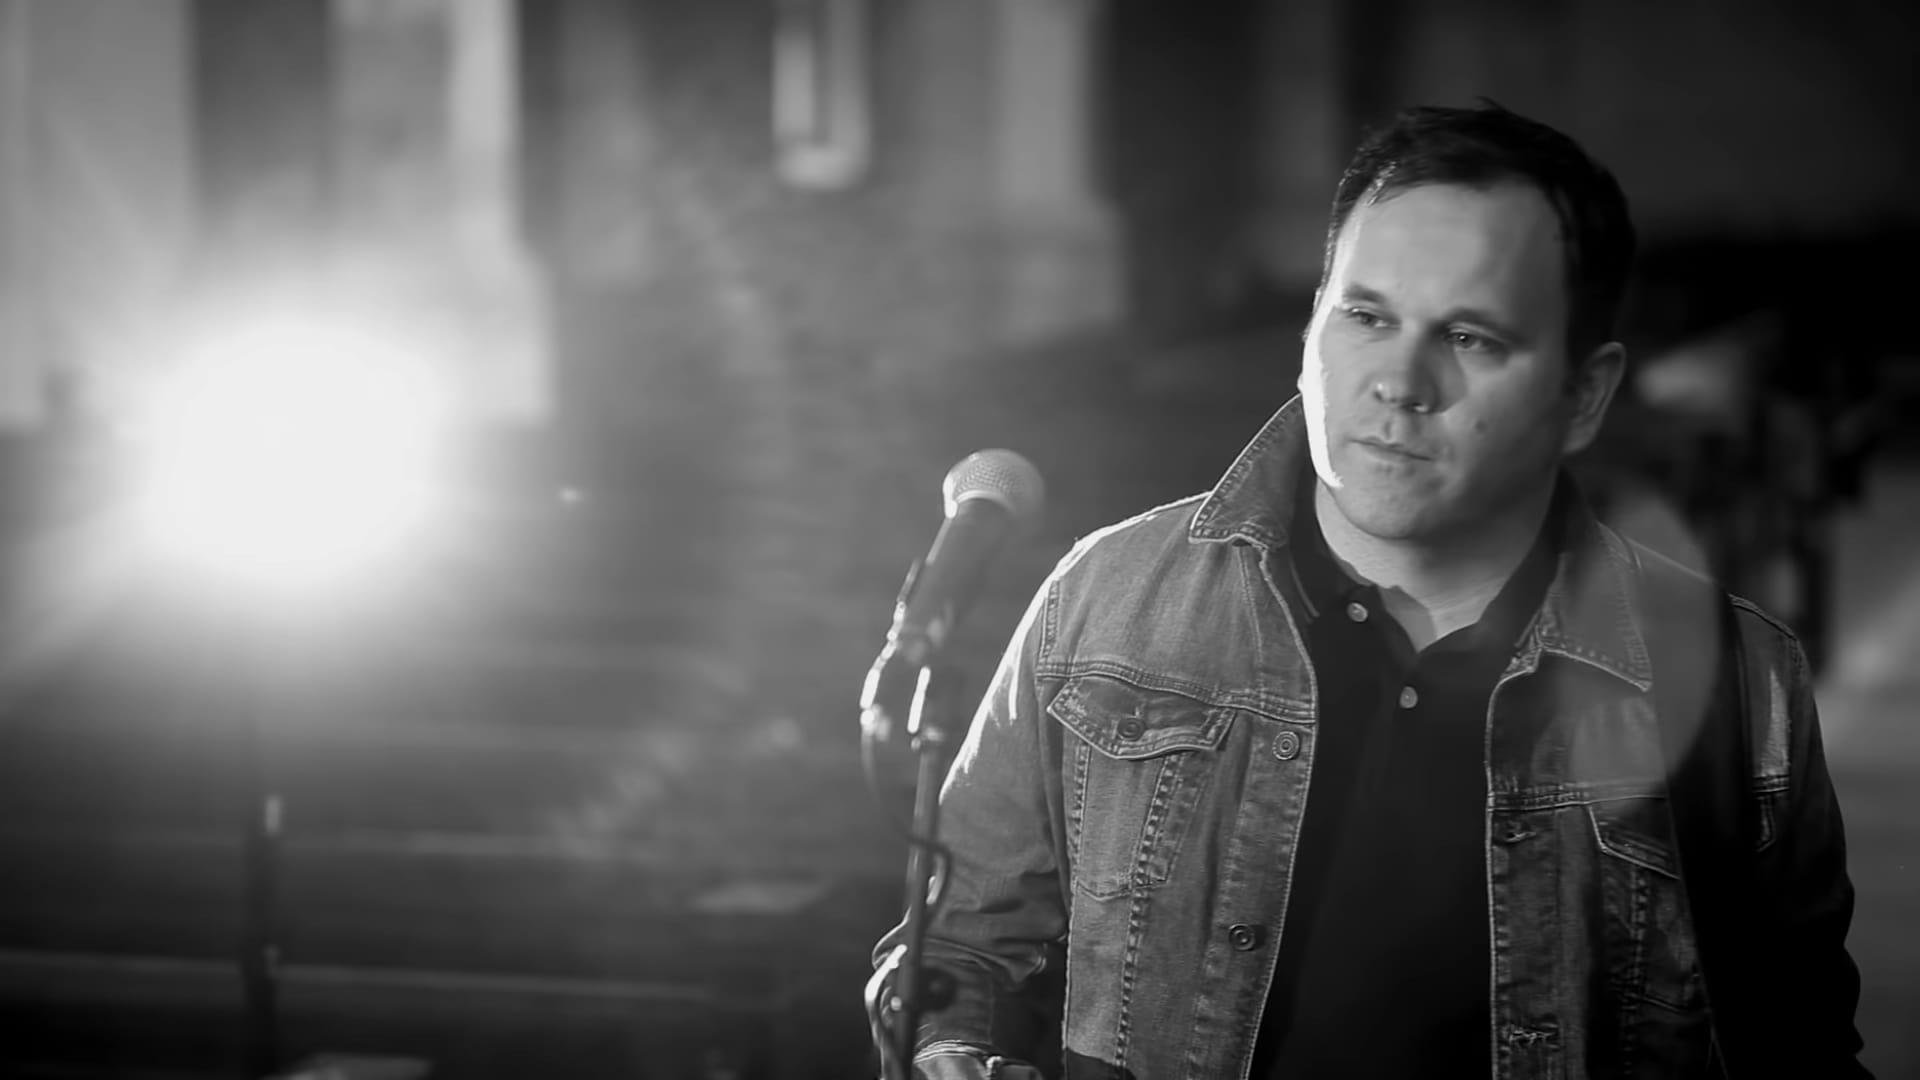 Matt Redman-10,000 Reasons